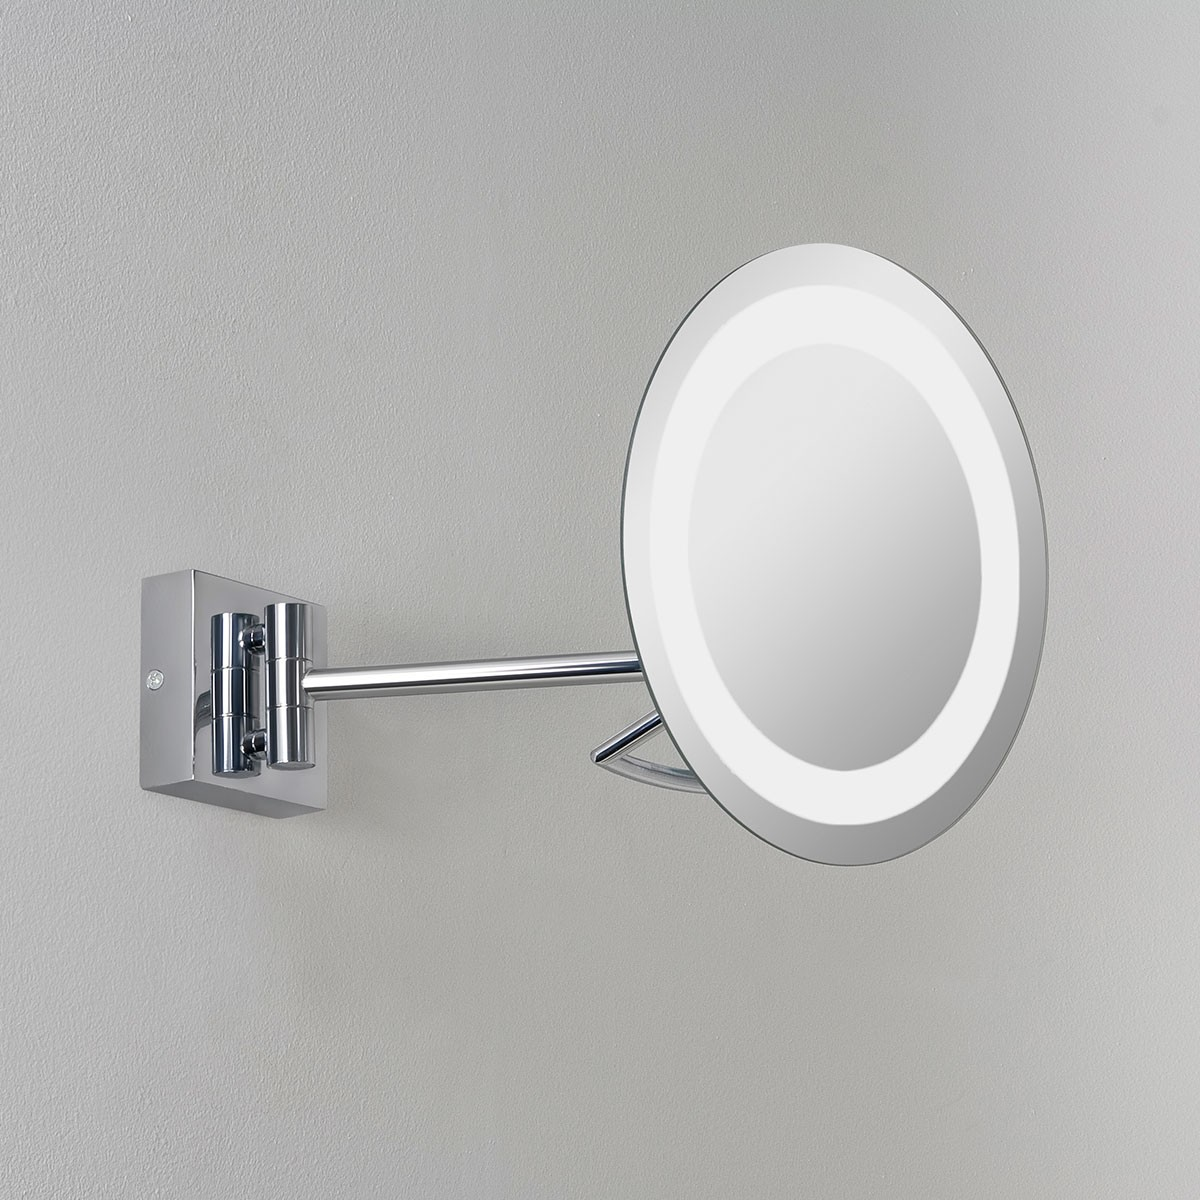 Astro Gena Plus Polished Chrome Bathroom Mirror Light at UK Electrical ...